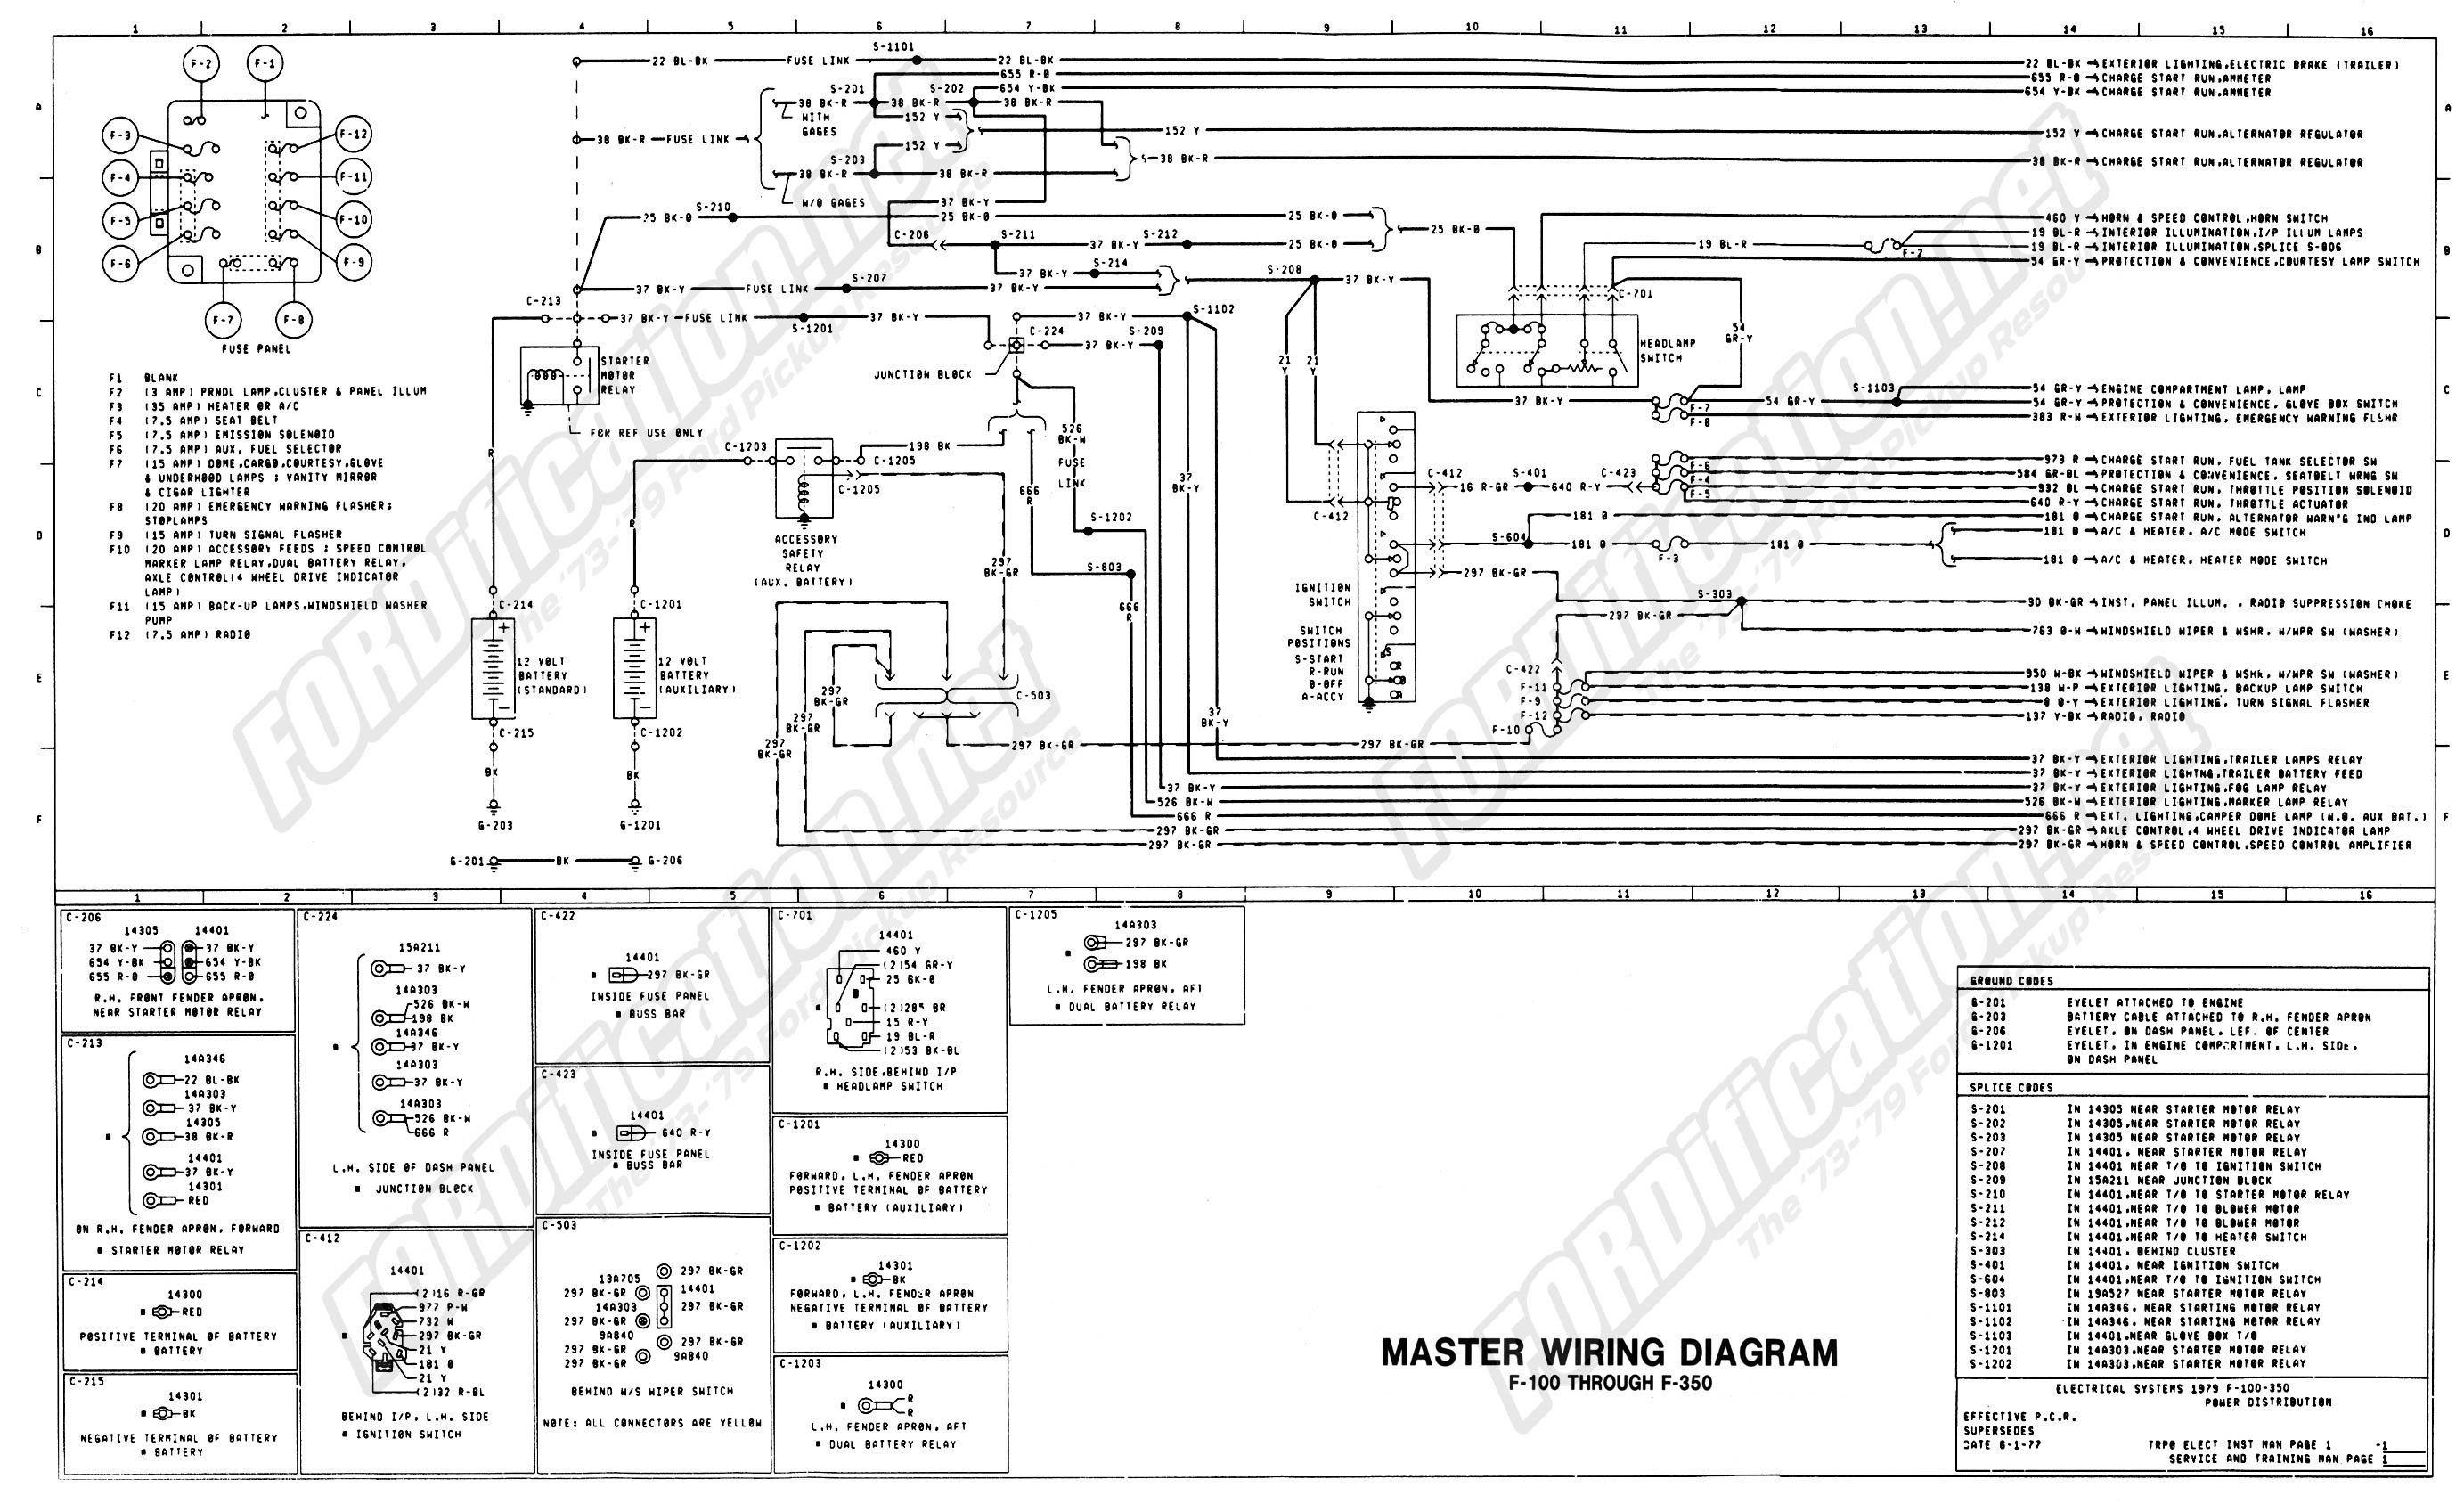 F250 Tail Light Wiring 1973 1979 ford Truck Wiring Diagrams & Schematics Of F250 Tail Light Wiring